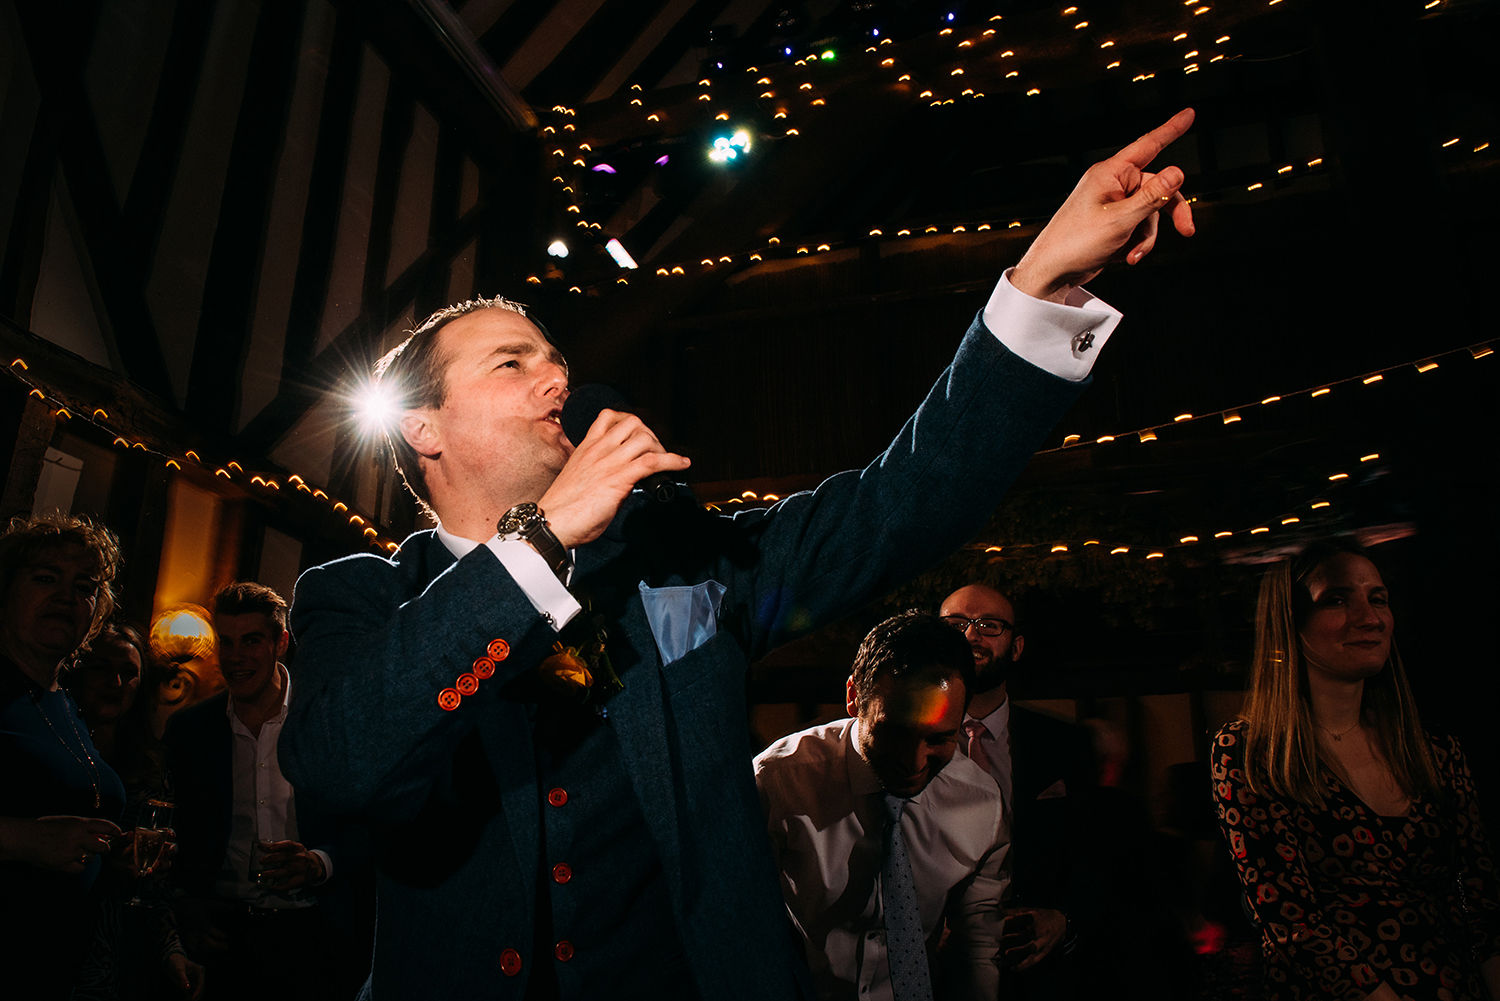 best man rapping for the guests